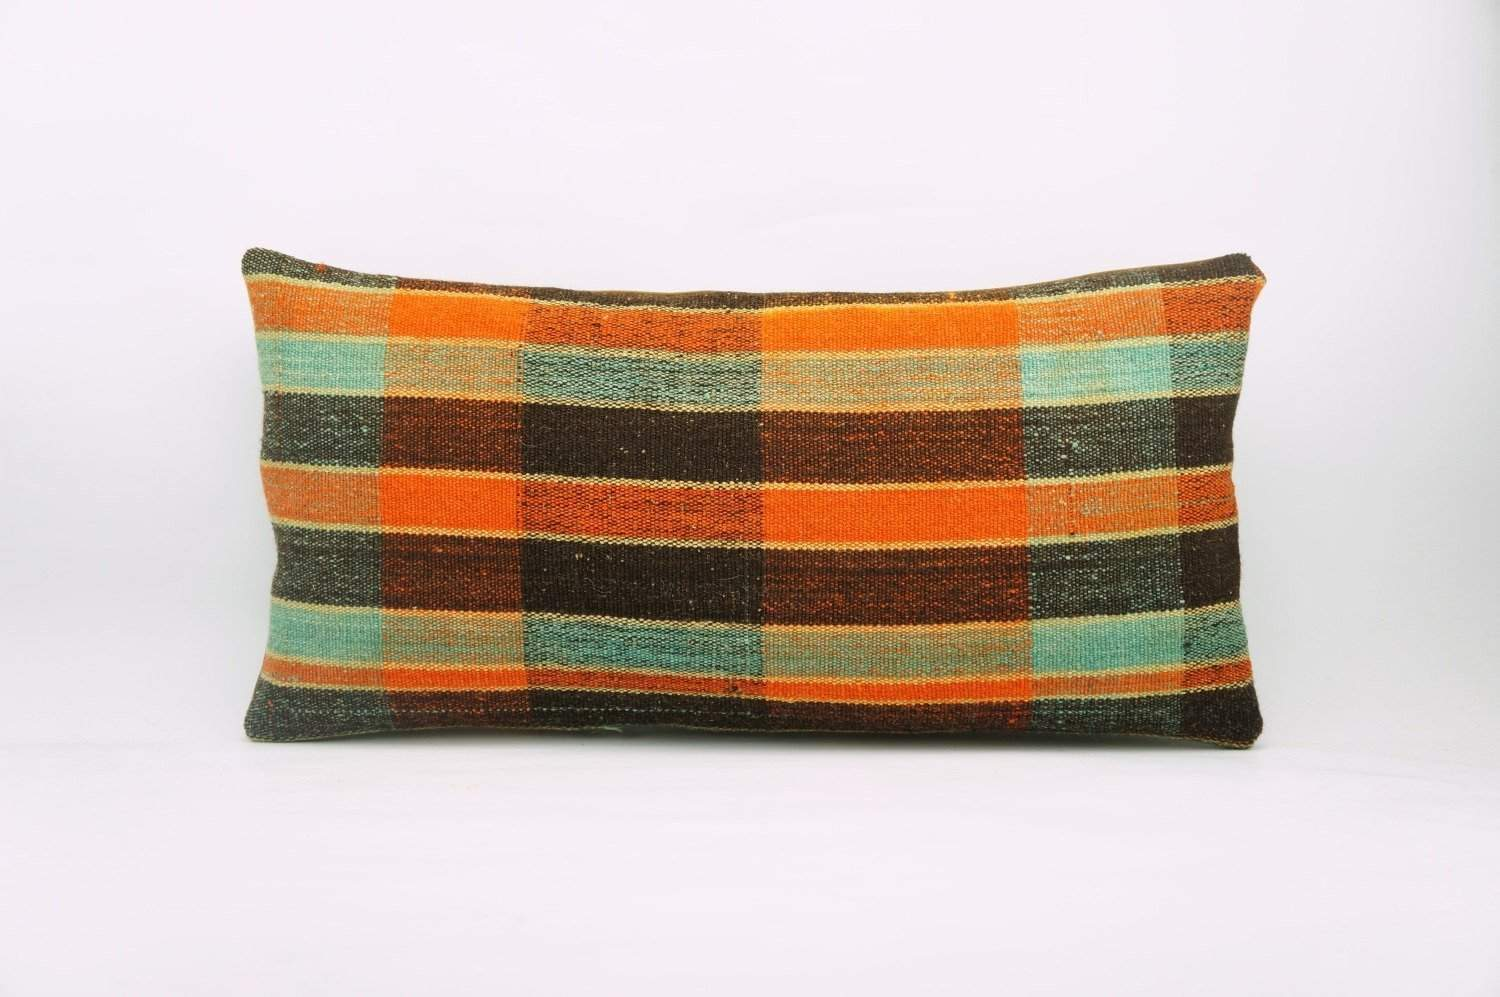 12x24 Vintage Hand Woven Kilim Pillow Lumbar Bohemian pillow case, 977